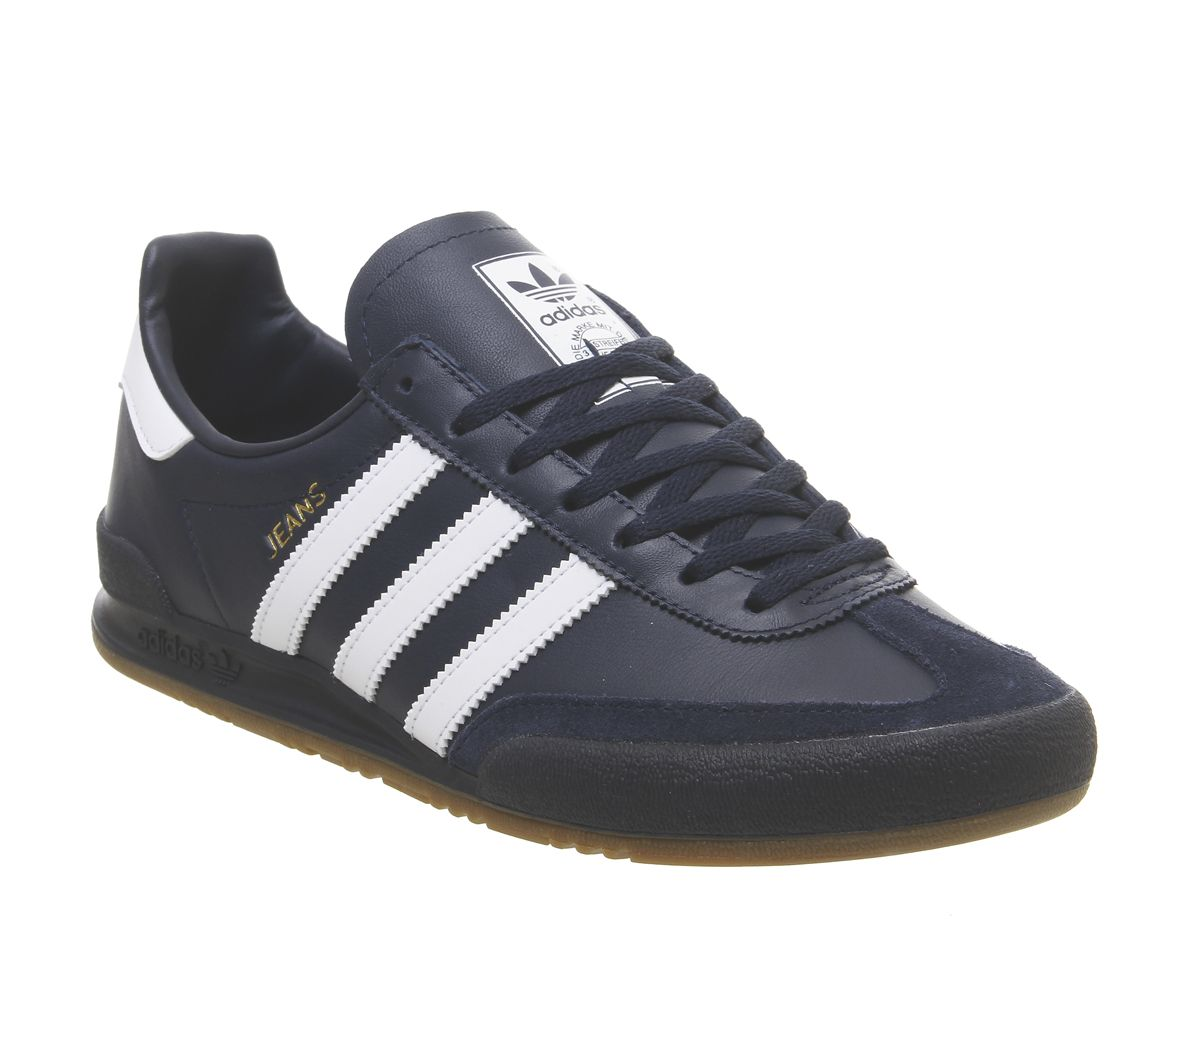 837116f64ce Sentinel Adidas Jeans Trainers Collegiate Navy White Legend Ink Trainers  Shoes